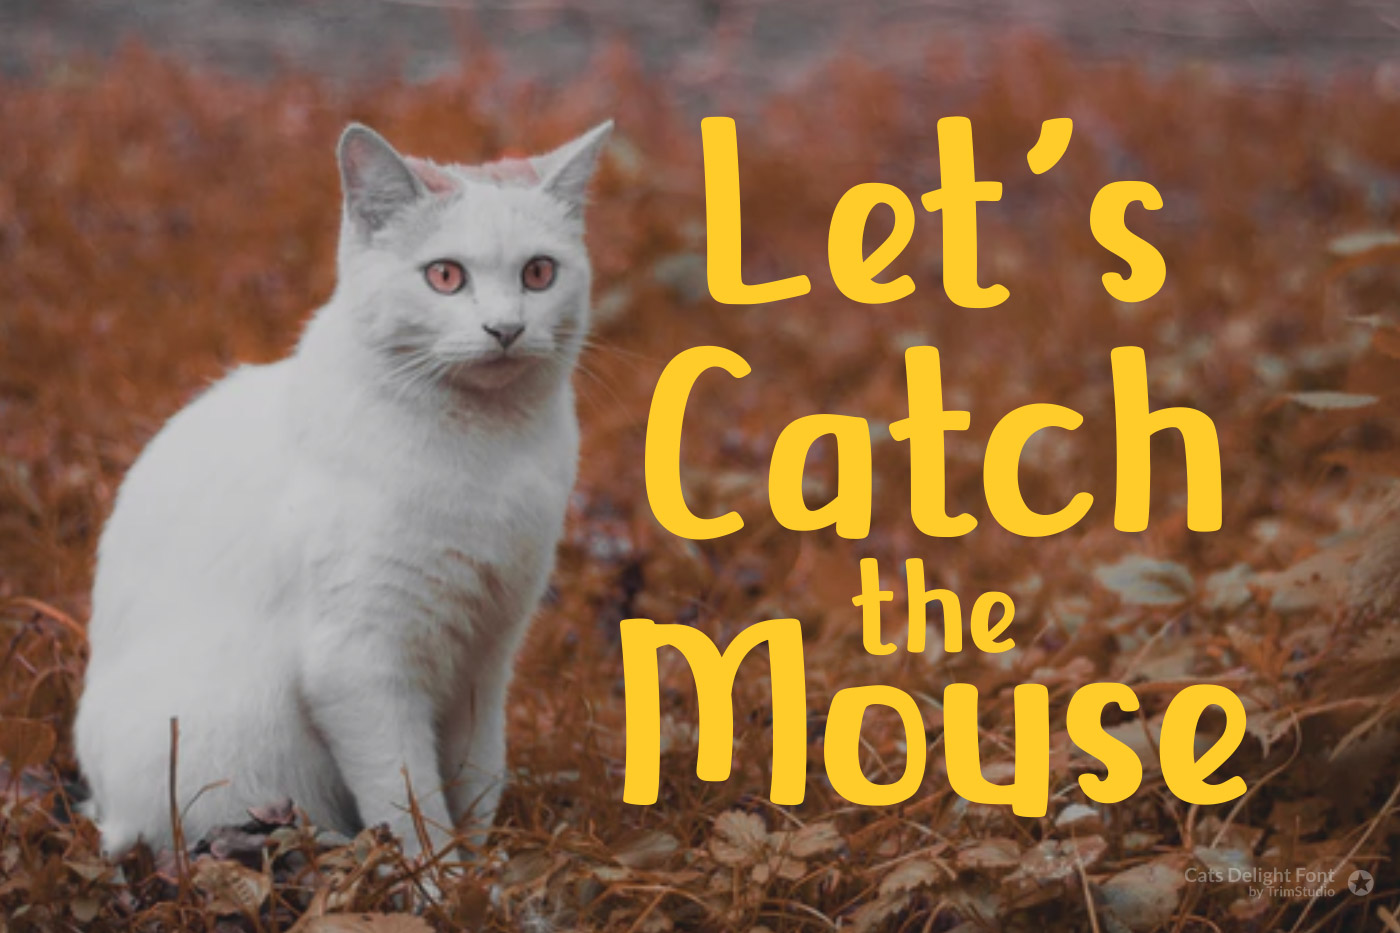 Cats Delight - Cat Display Font example image 2